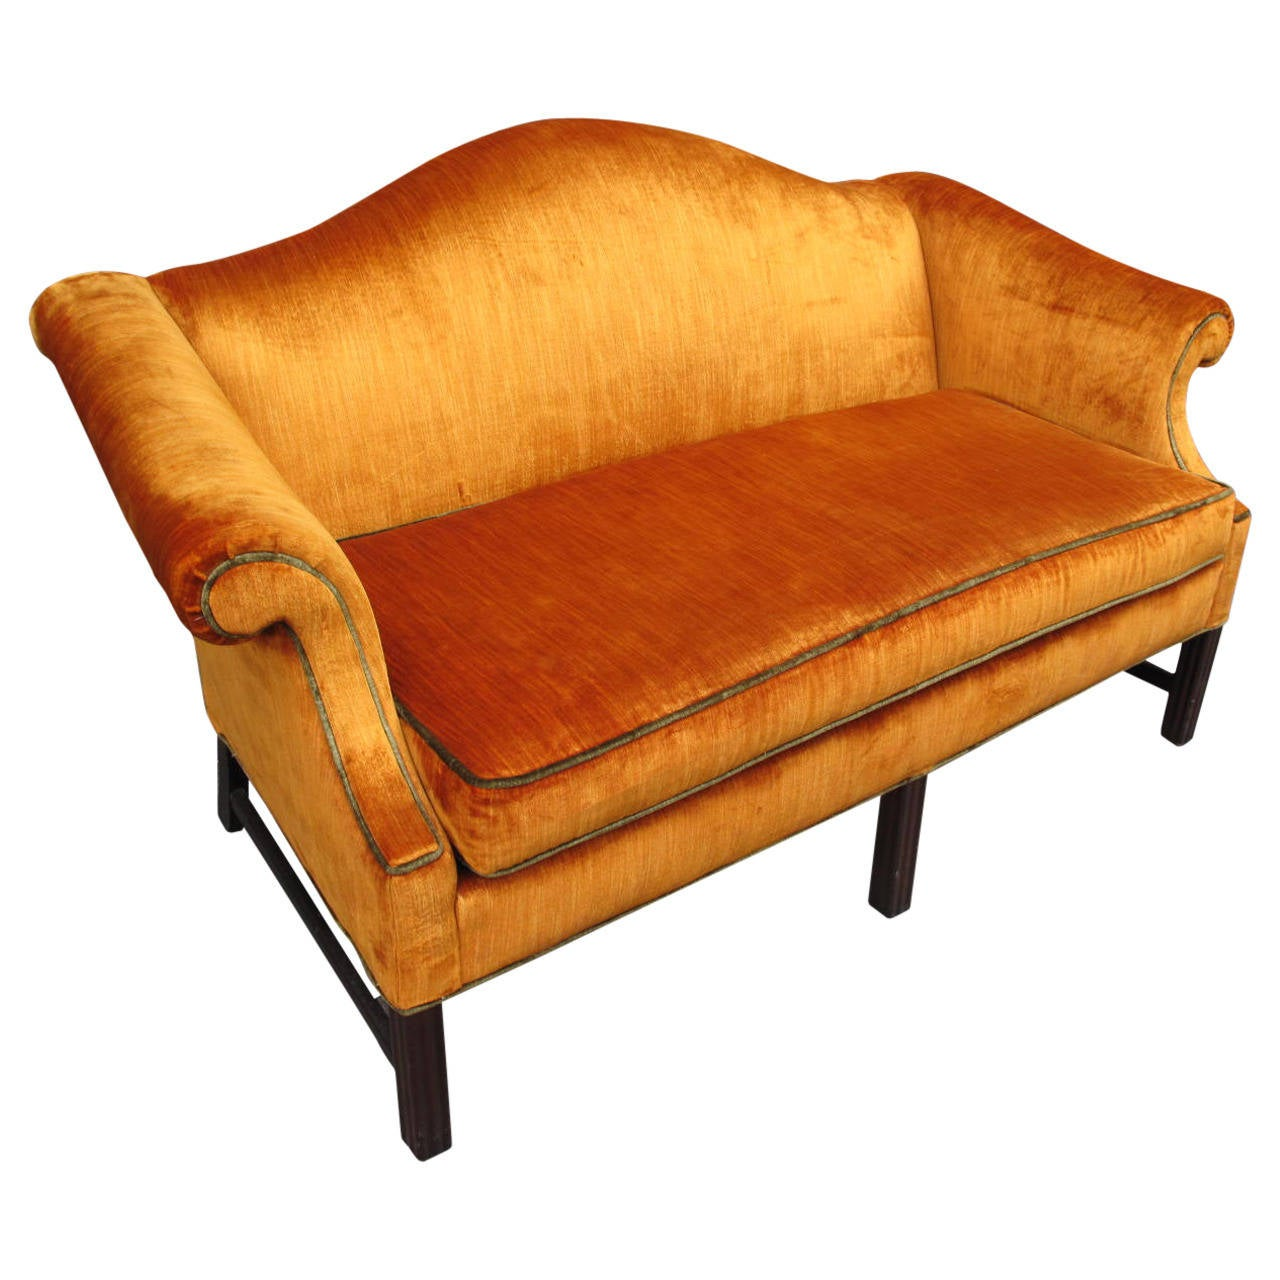 Panne velvet upholstered sofa at 1stdibs Upholstered sofas and loveseats